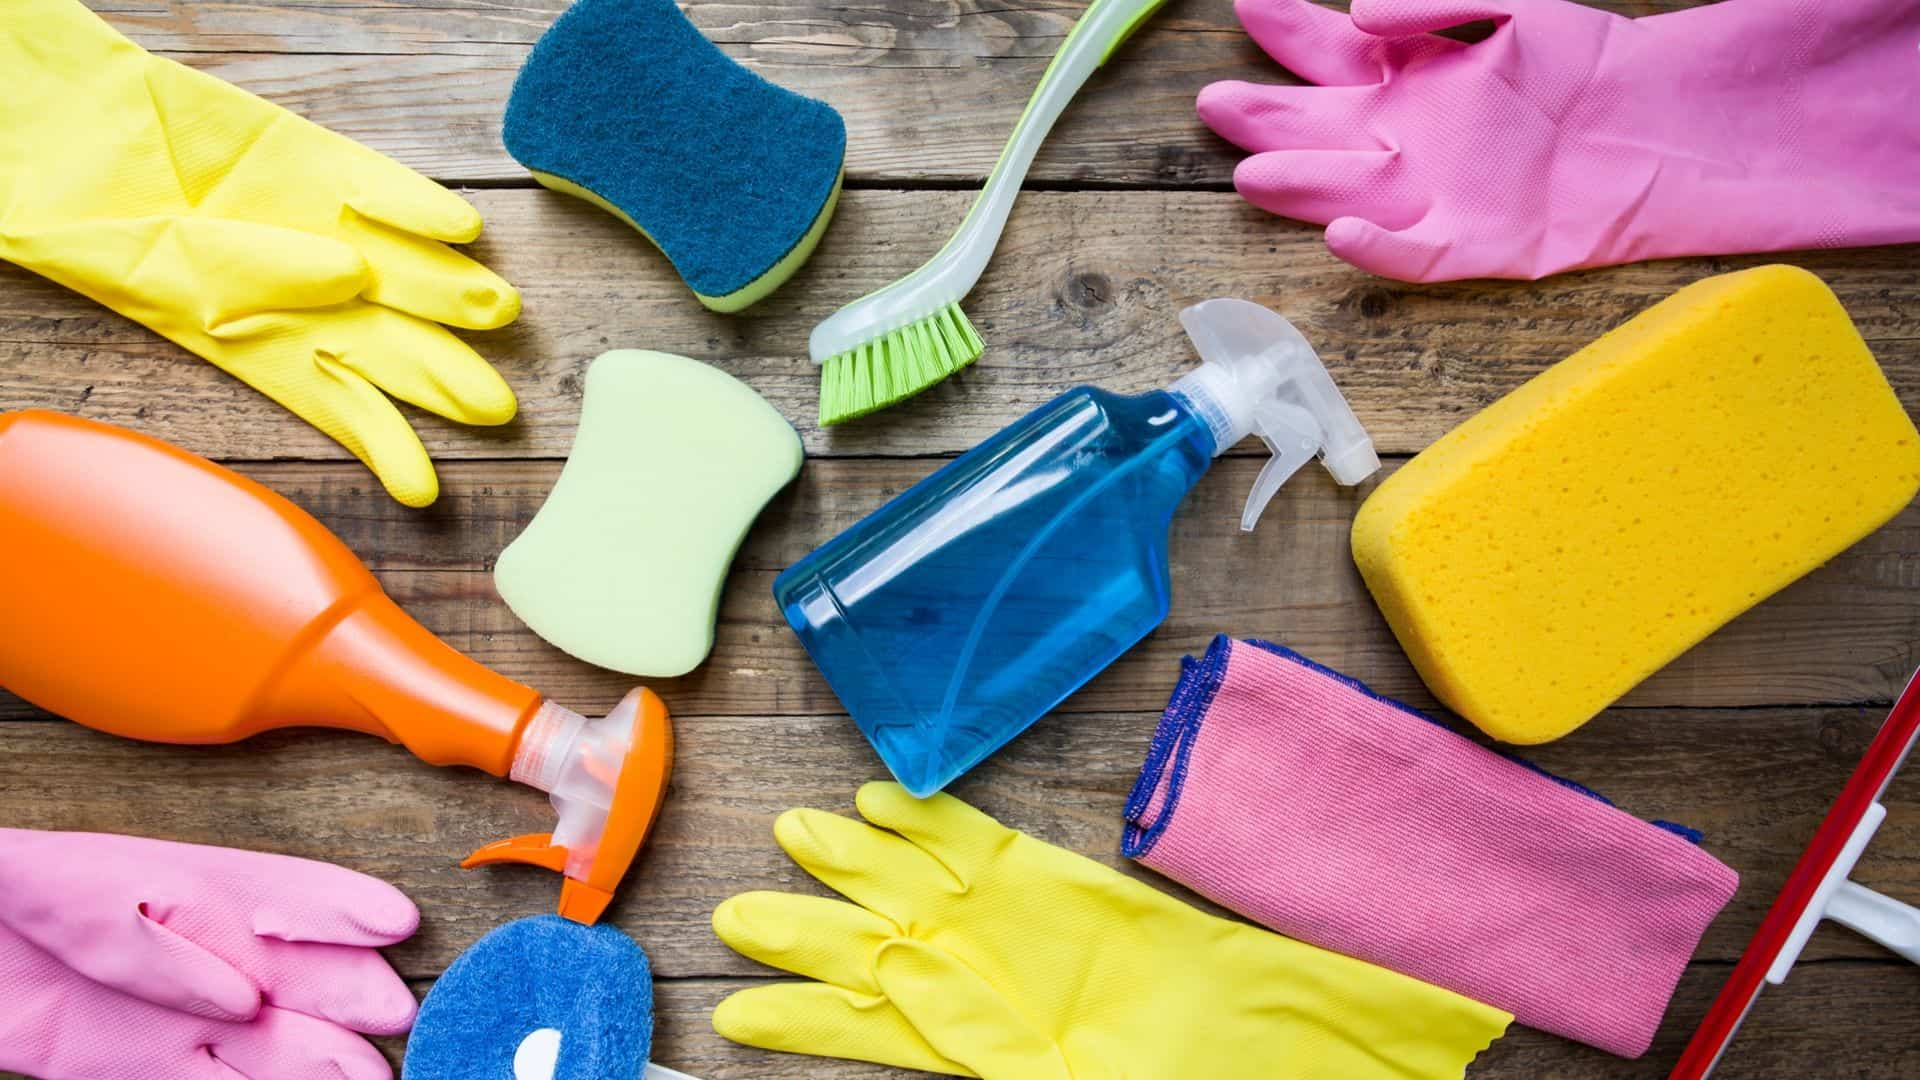 How To Clean Your House? In What Order?